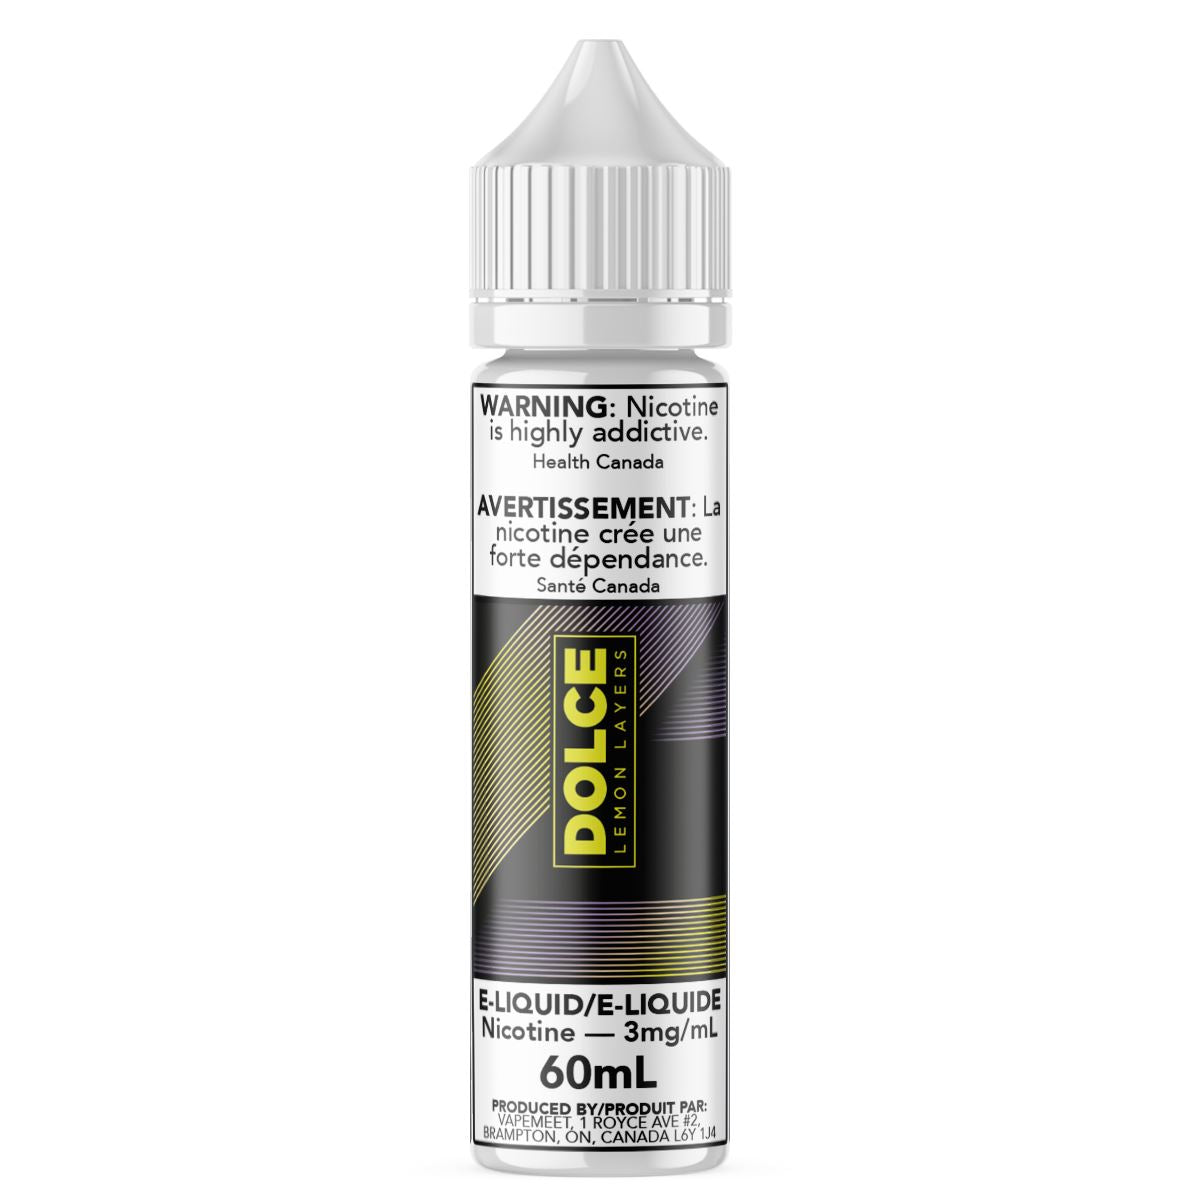 Dolce - Lemon Layers E-Liquid Dolce 60mL 0 mg/mL